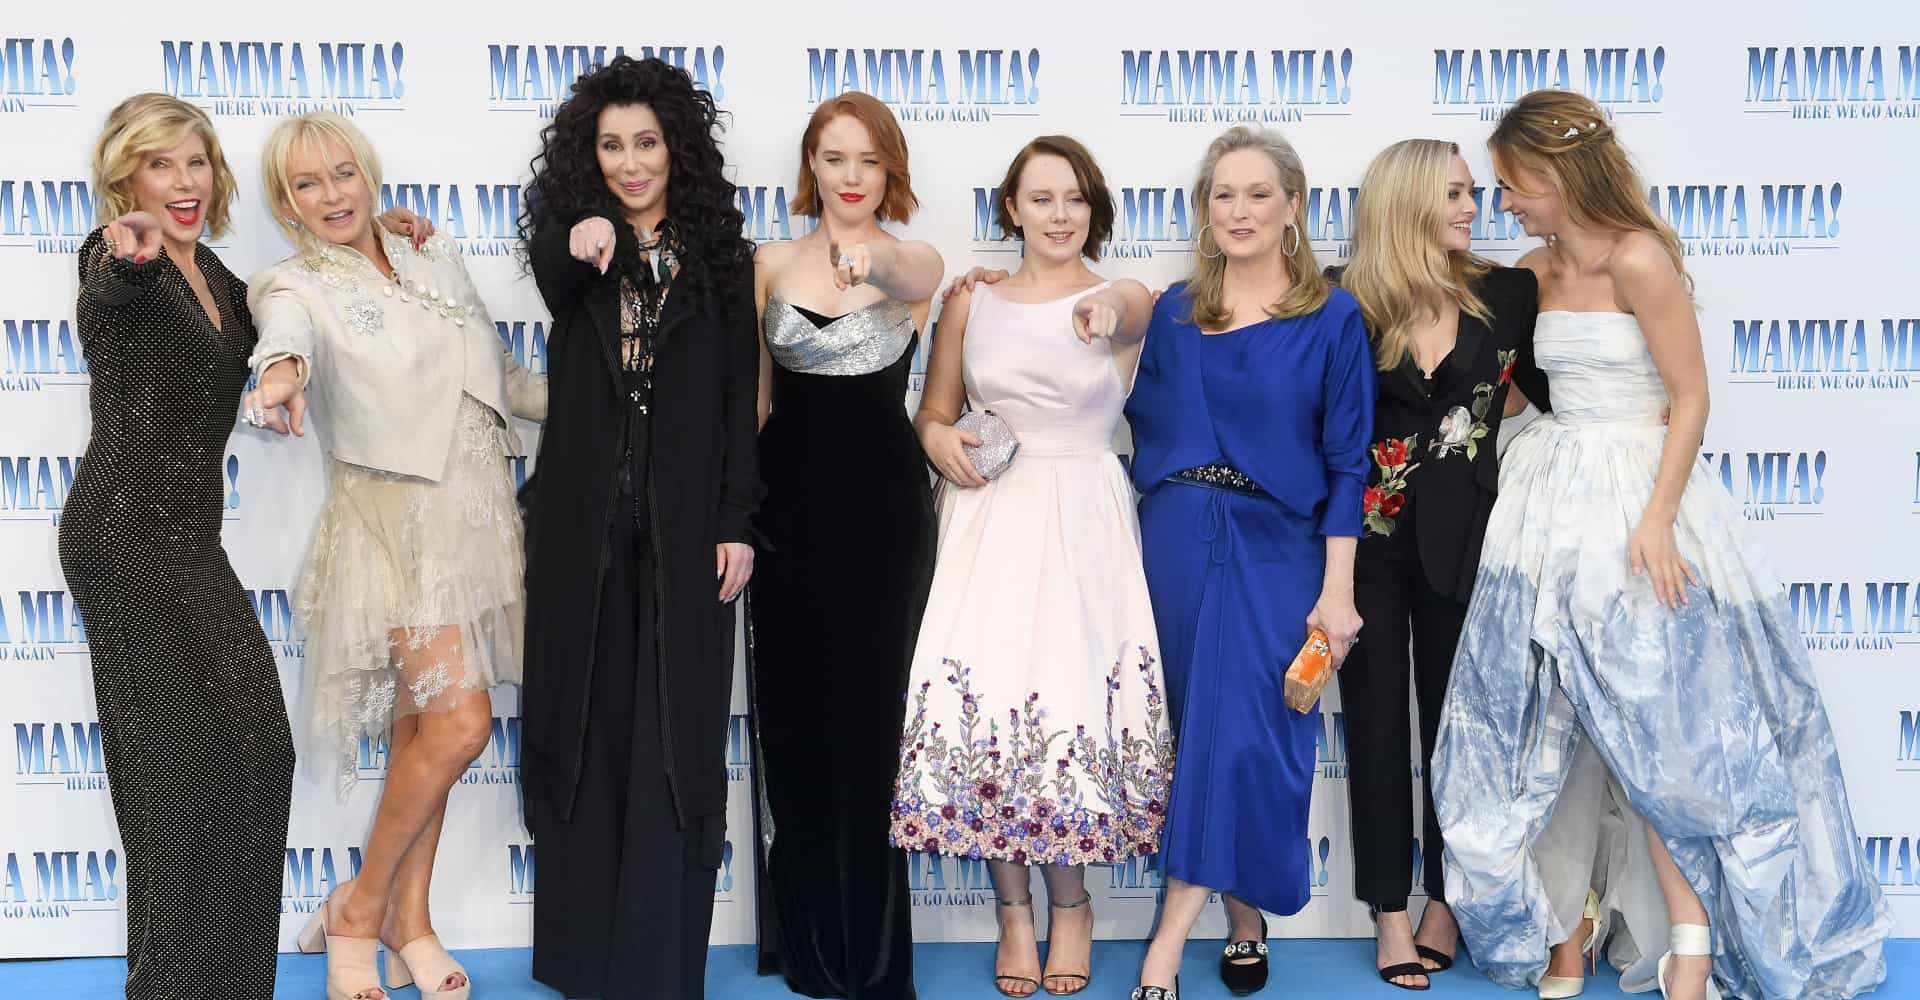 Here we go again! 'Mamma Mia!' cast hits the blue carpet